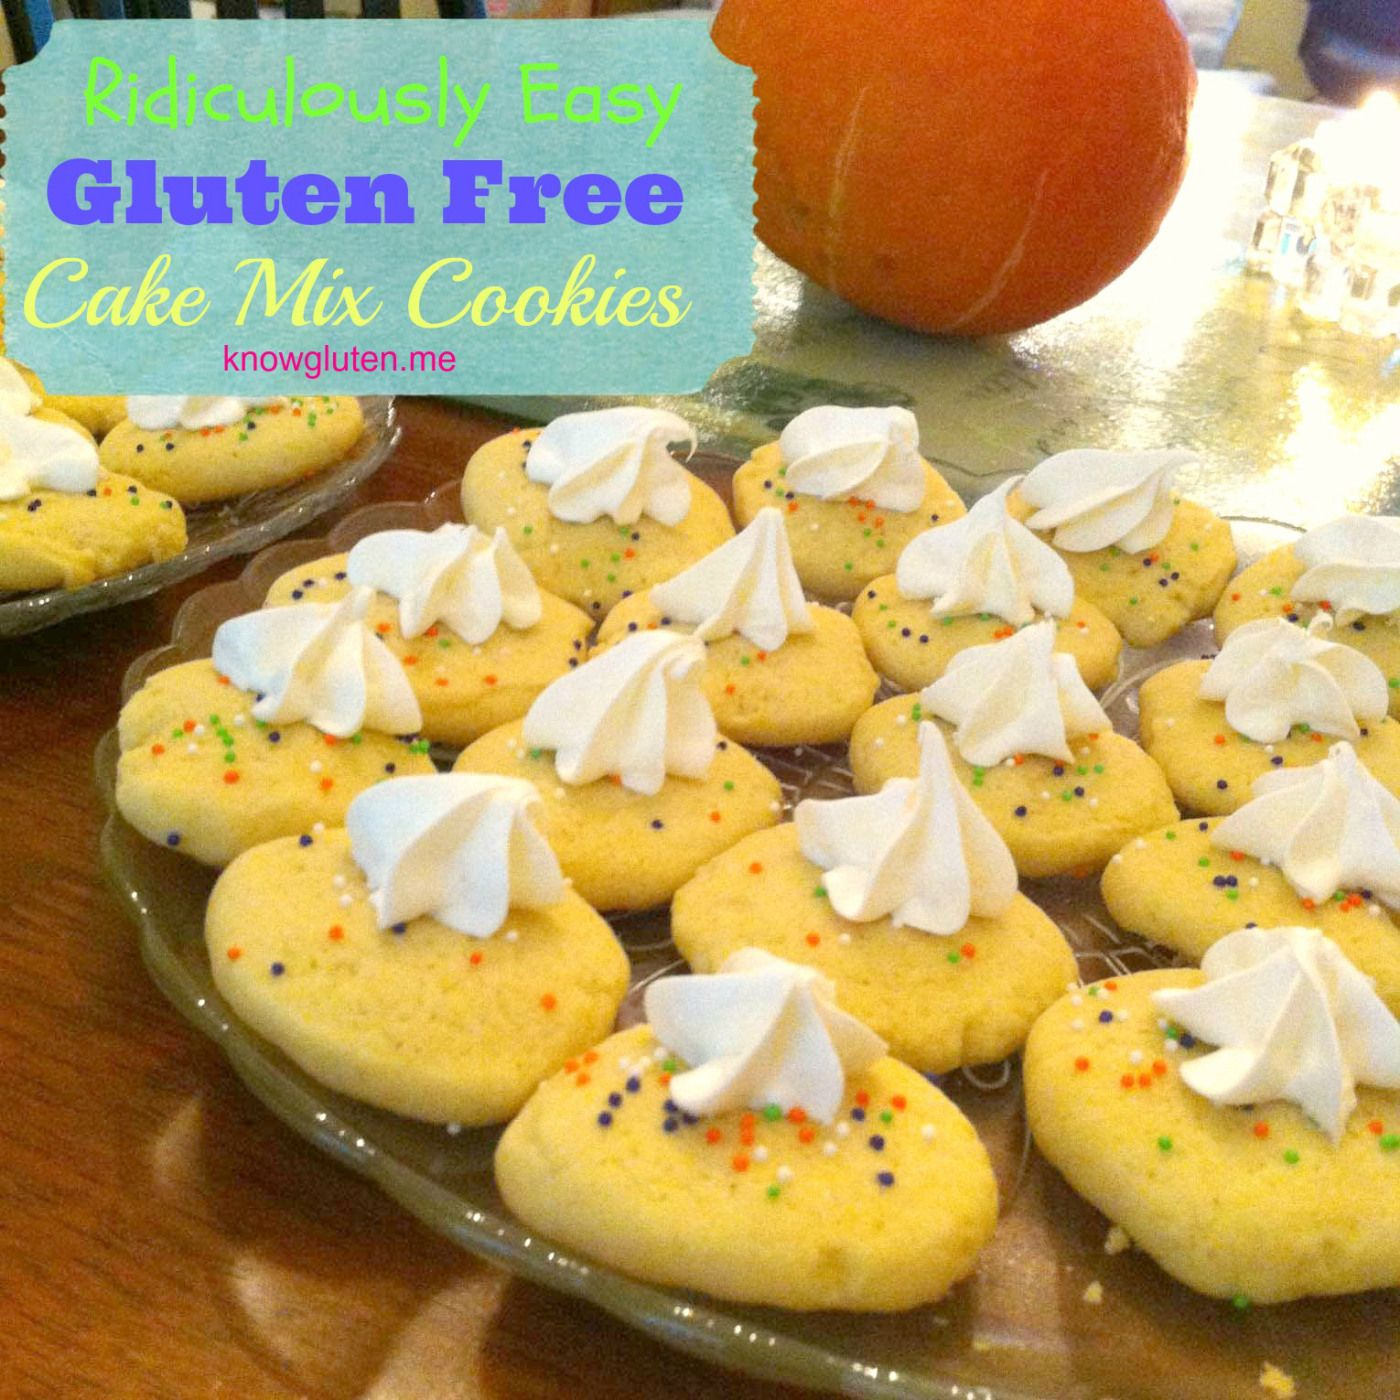 Ridiculously Easy Gluten Free Cake Mix Cookies | know gluten